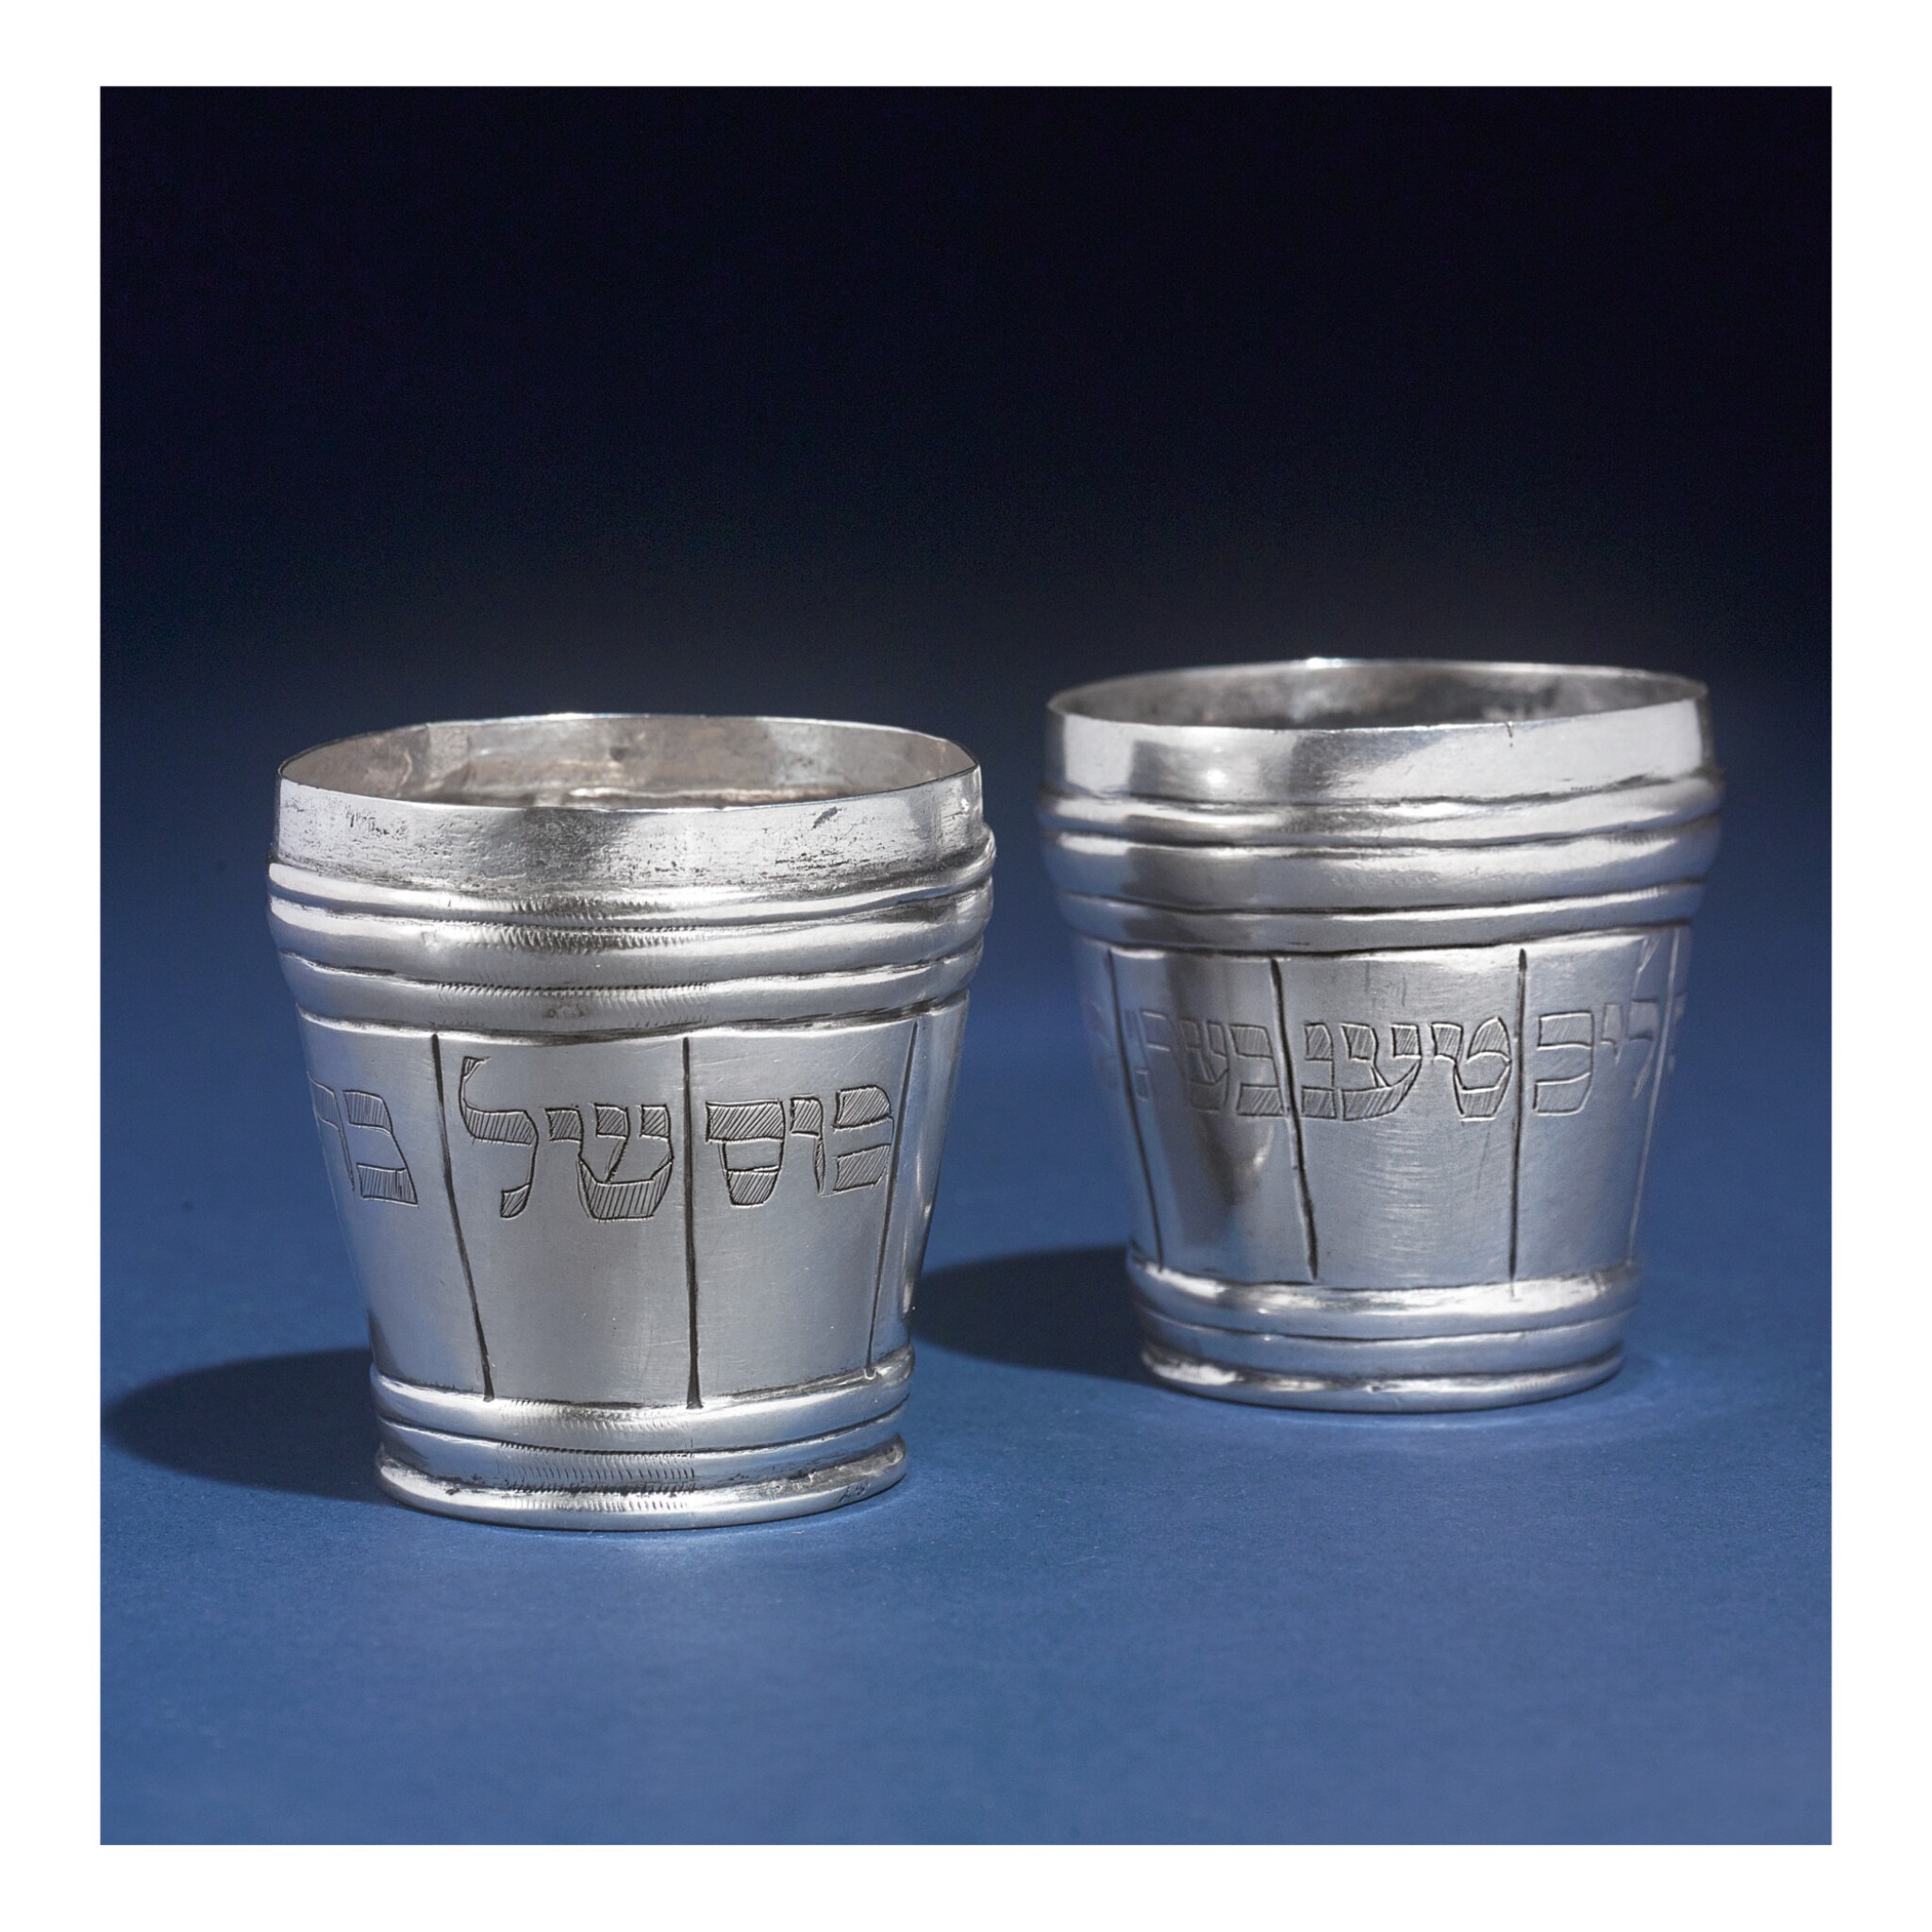 View full screen - View 1 of Lot 118. A SILVER DOUBLE BEAKER FOR CIRCUMCISION, MAKER'S MARK DHE, TOWN MARK A SLIPPED TREFOIL, GERMAN OR AUSTRIAN, CIRCA 1800.